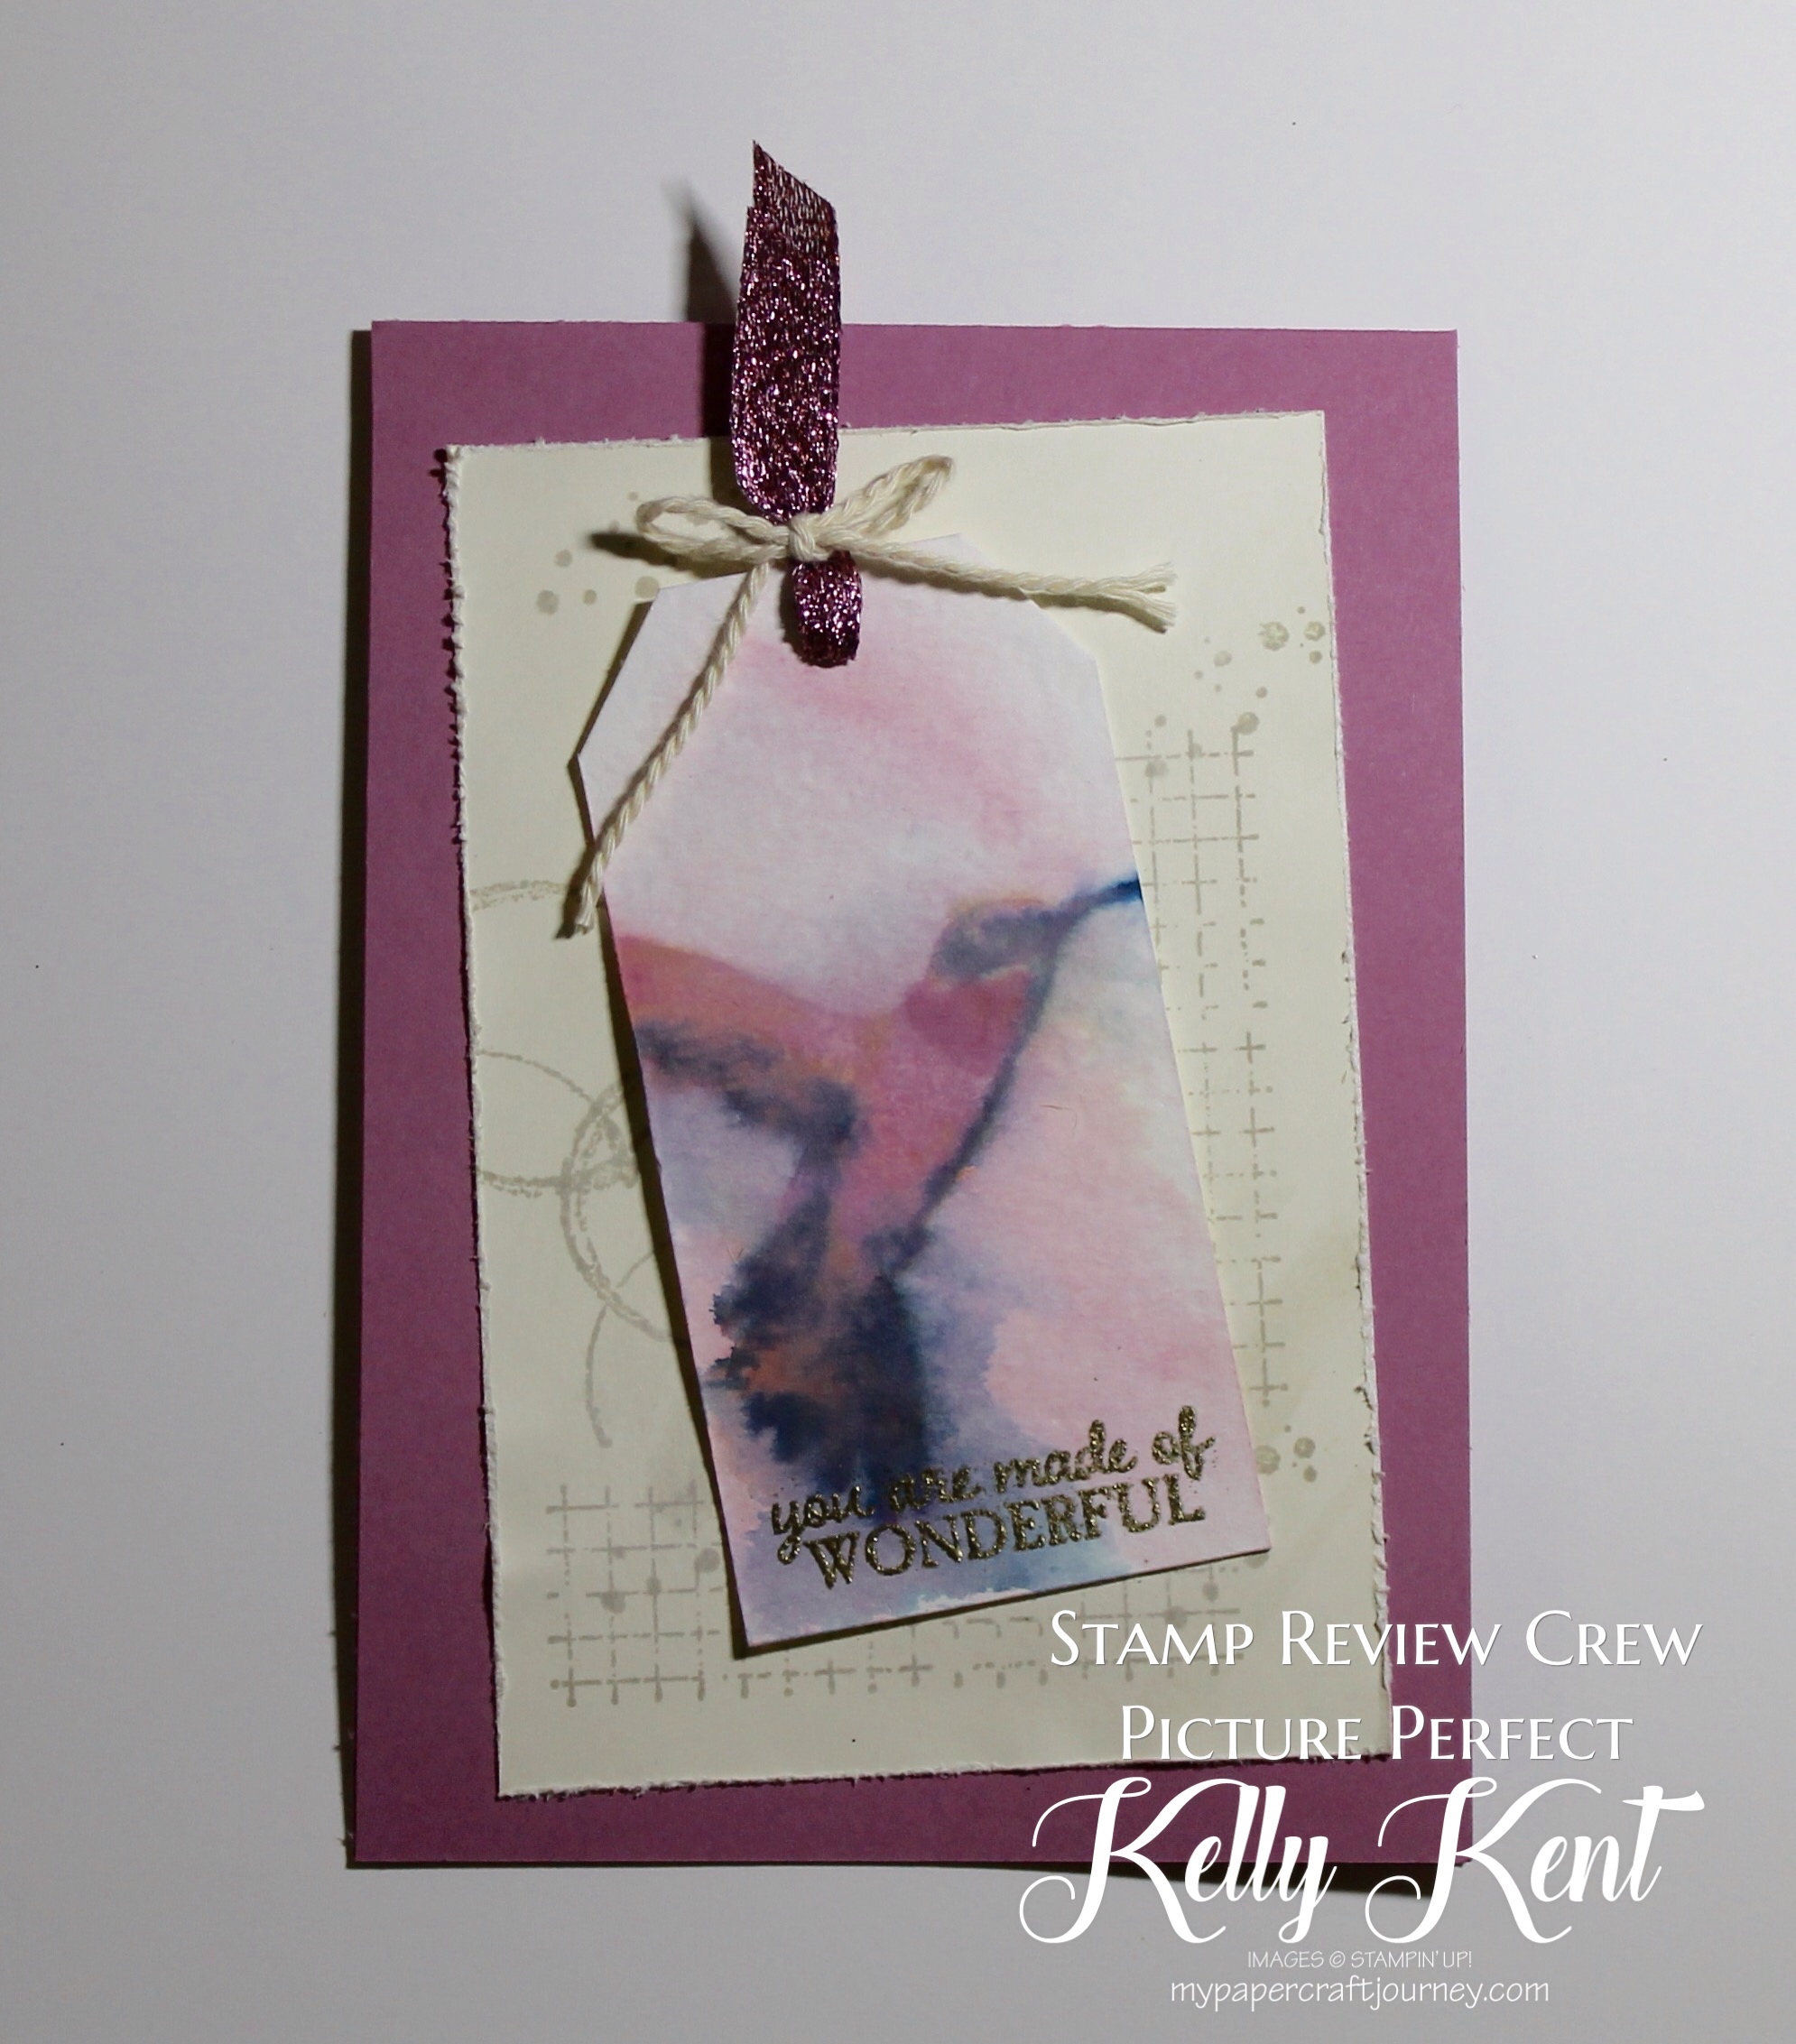 Stamp Review Crew - Picture Perfect. Kelly Kent - mypapercraftjourney.com.